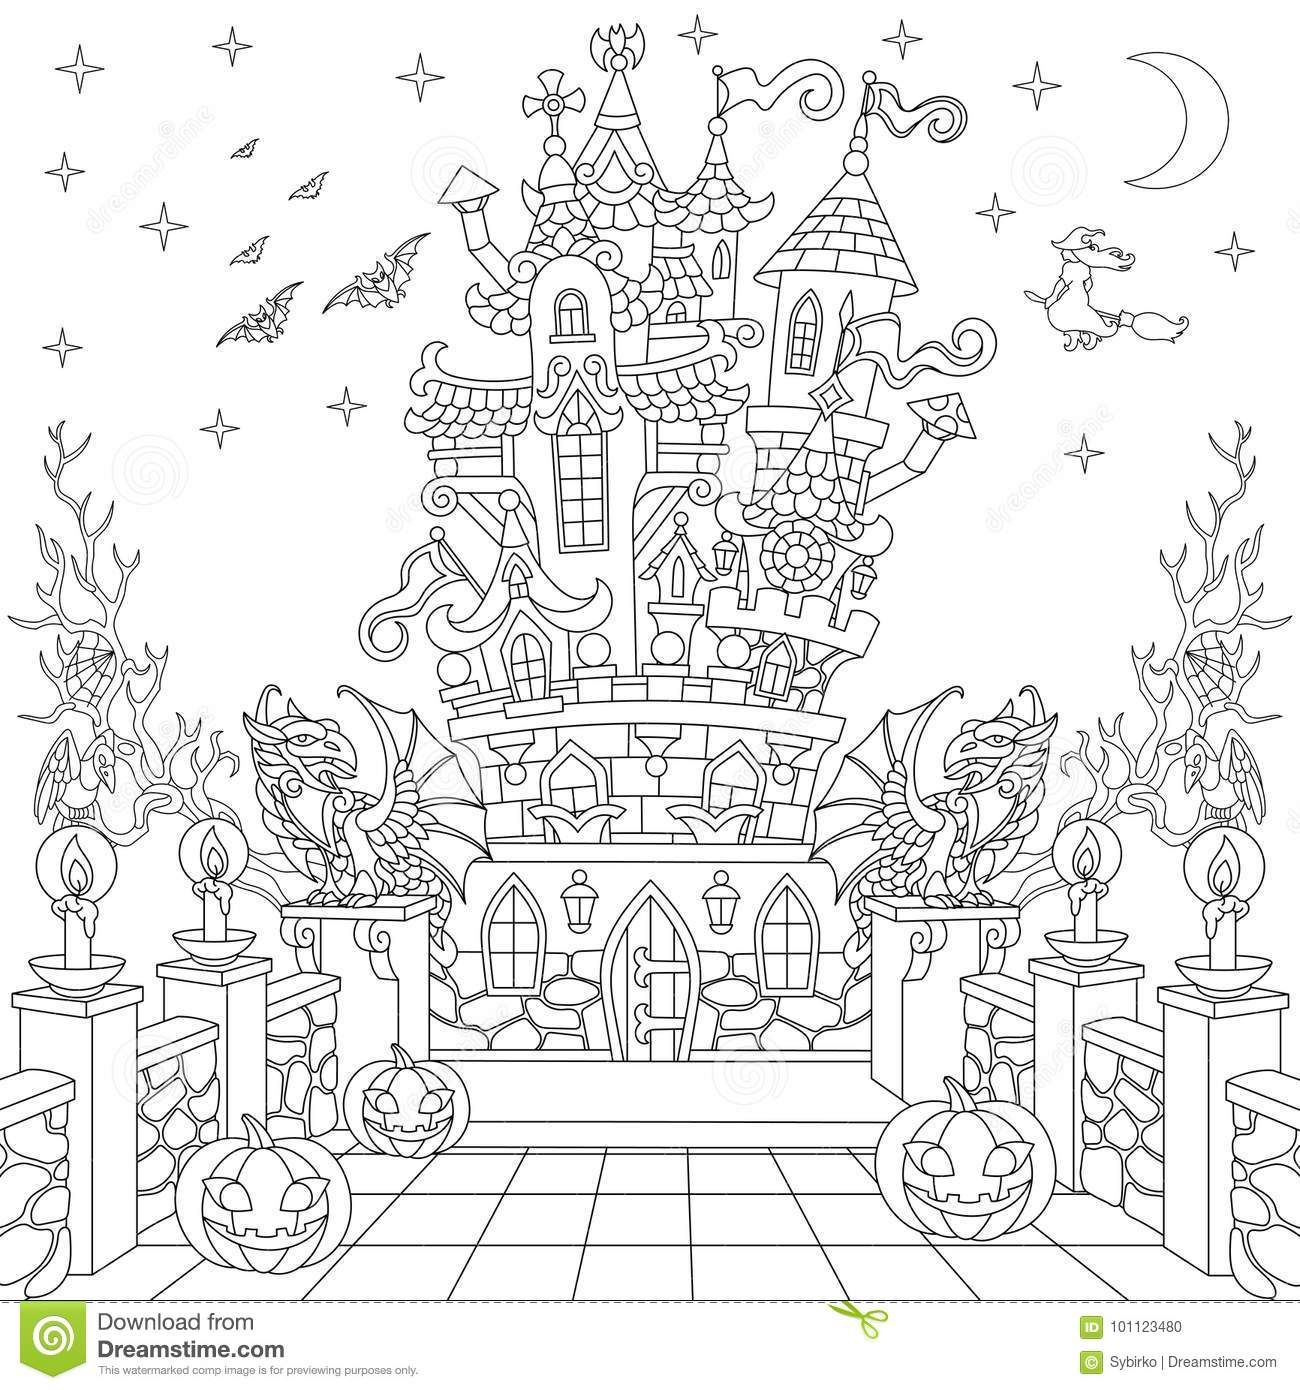 Pin By L Mainello On Colouring Halloween Coloring Pages Printable Christmas Coloring Pages Coloring Pages